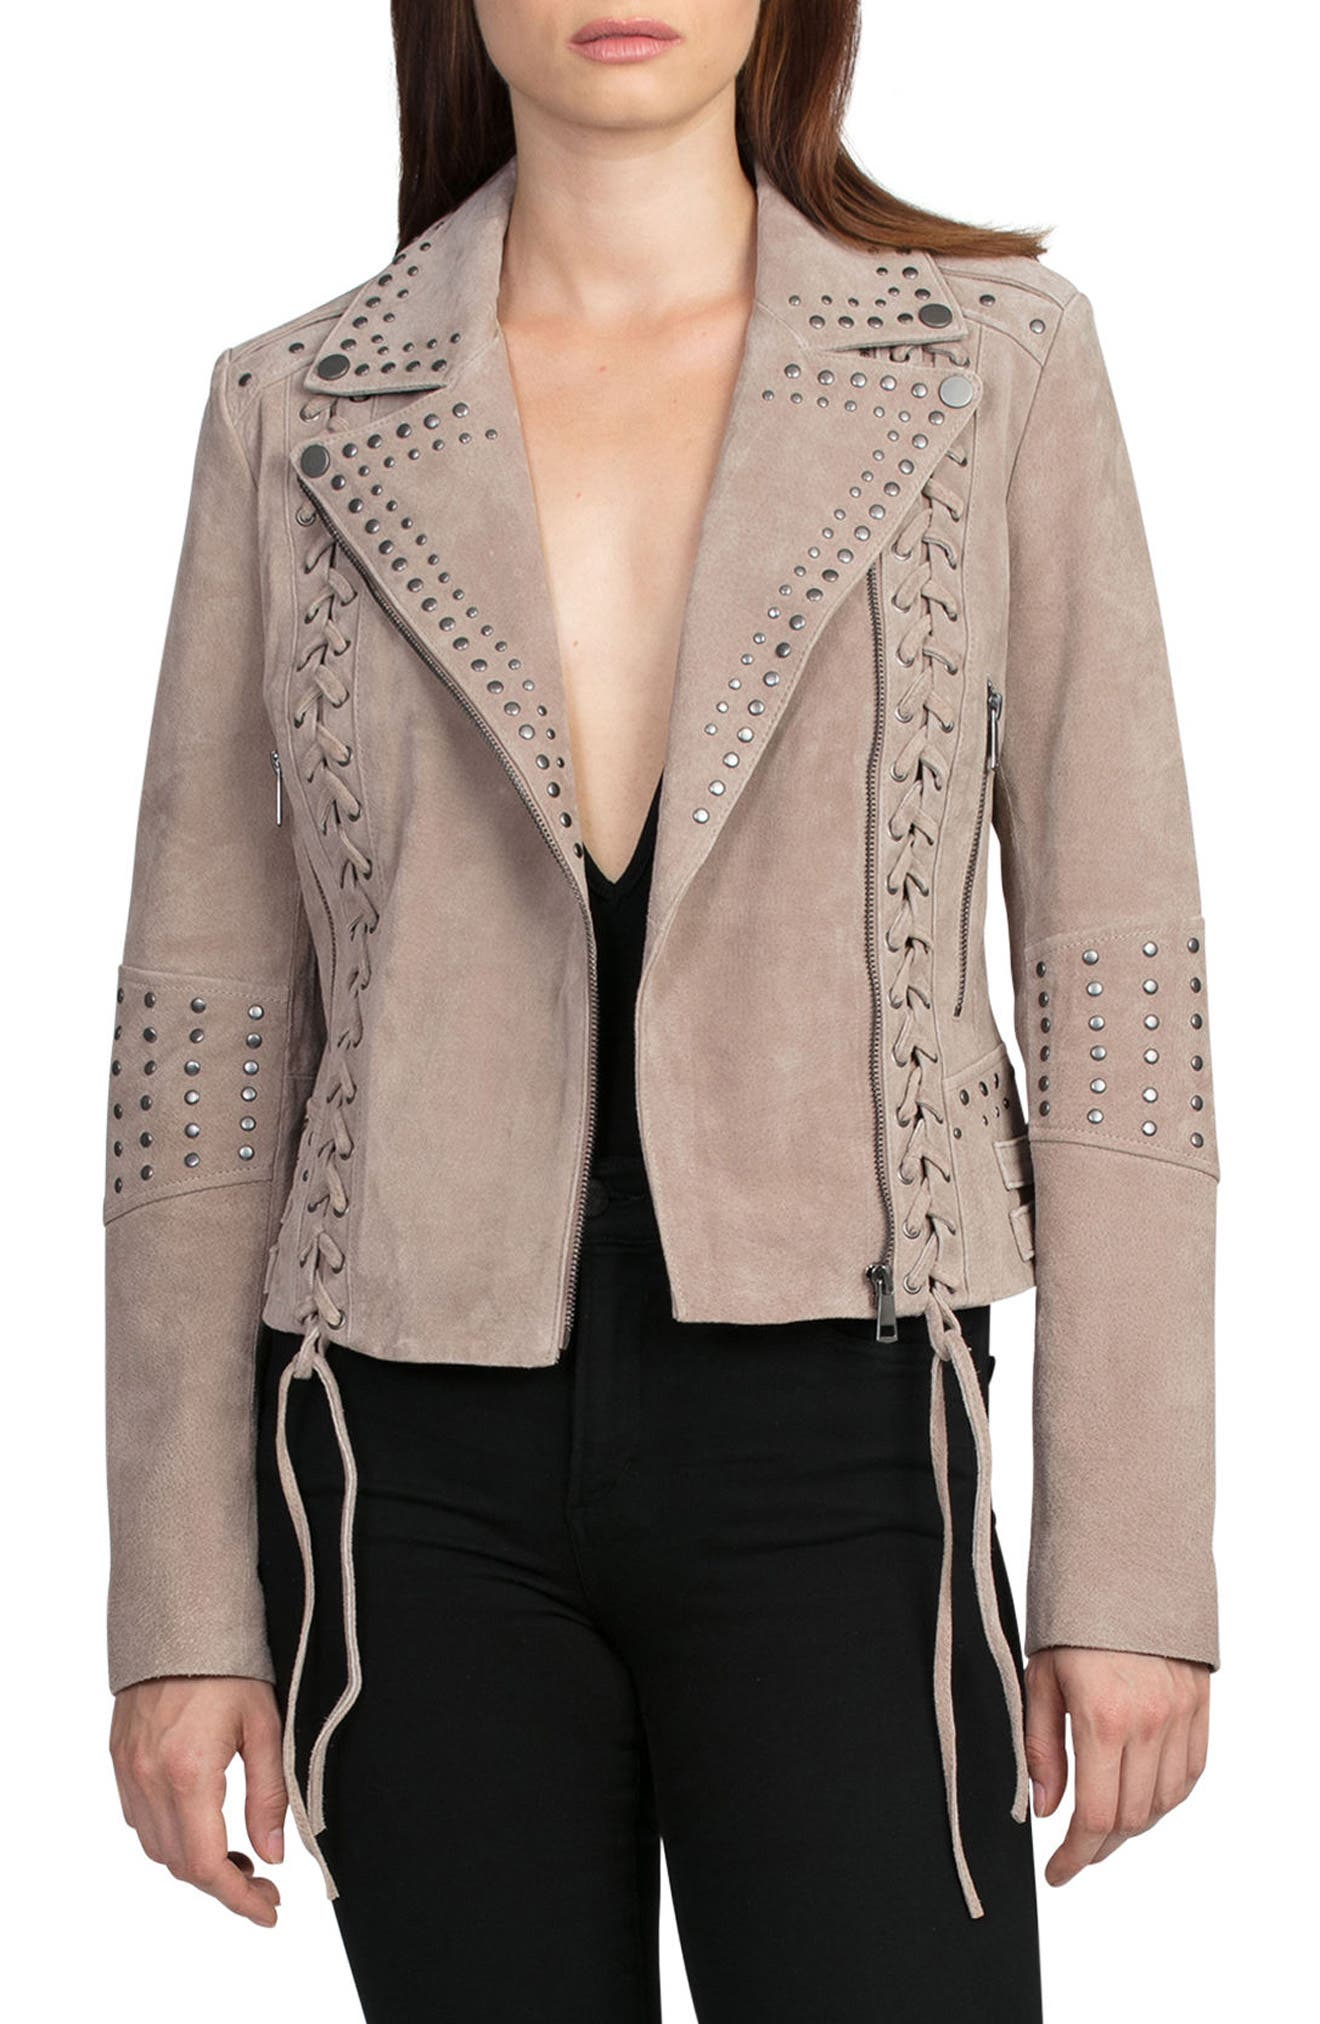 Bagatelle Studded Suede Jacket,                             Main thumbnail 1, color,                             Latte